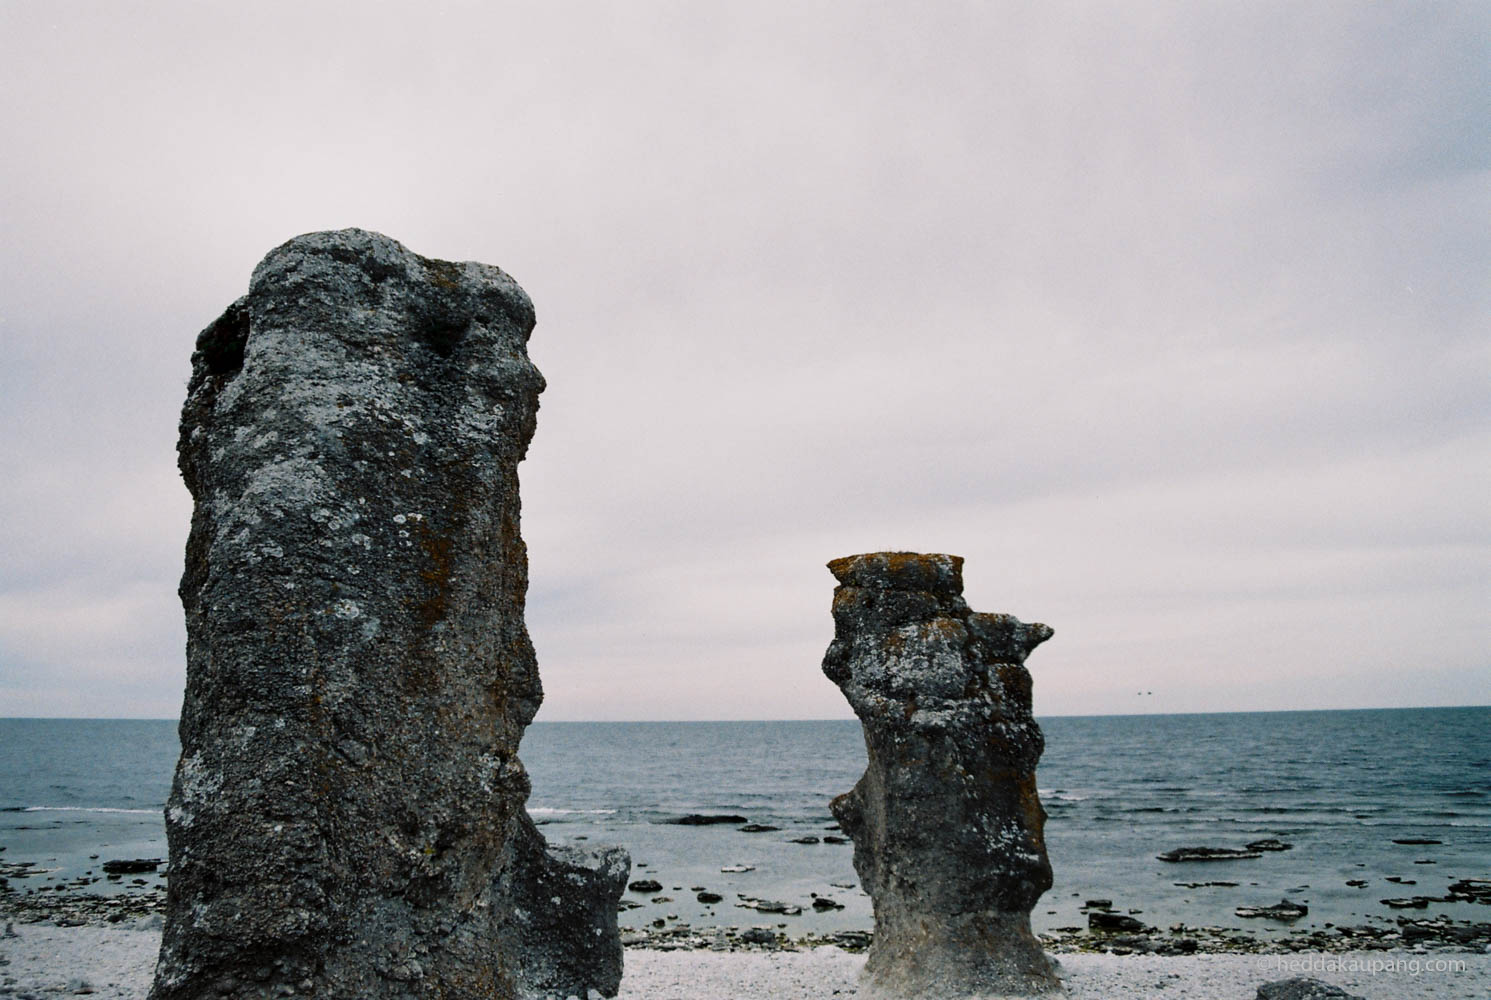 Langhammars on Fårö